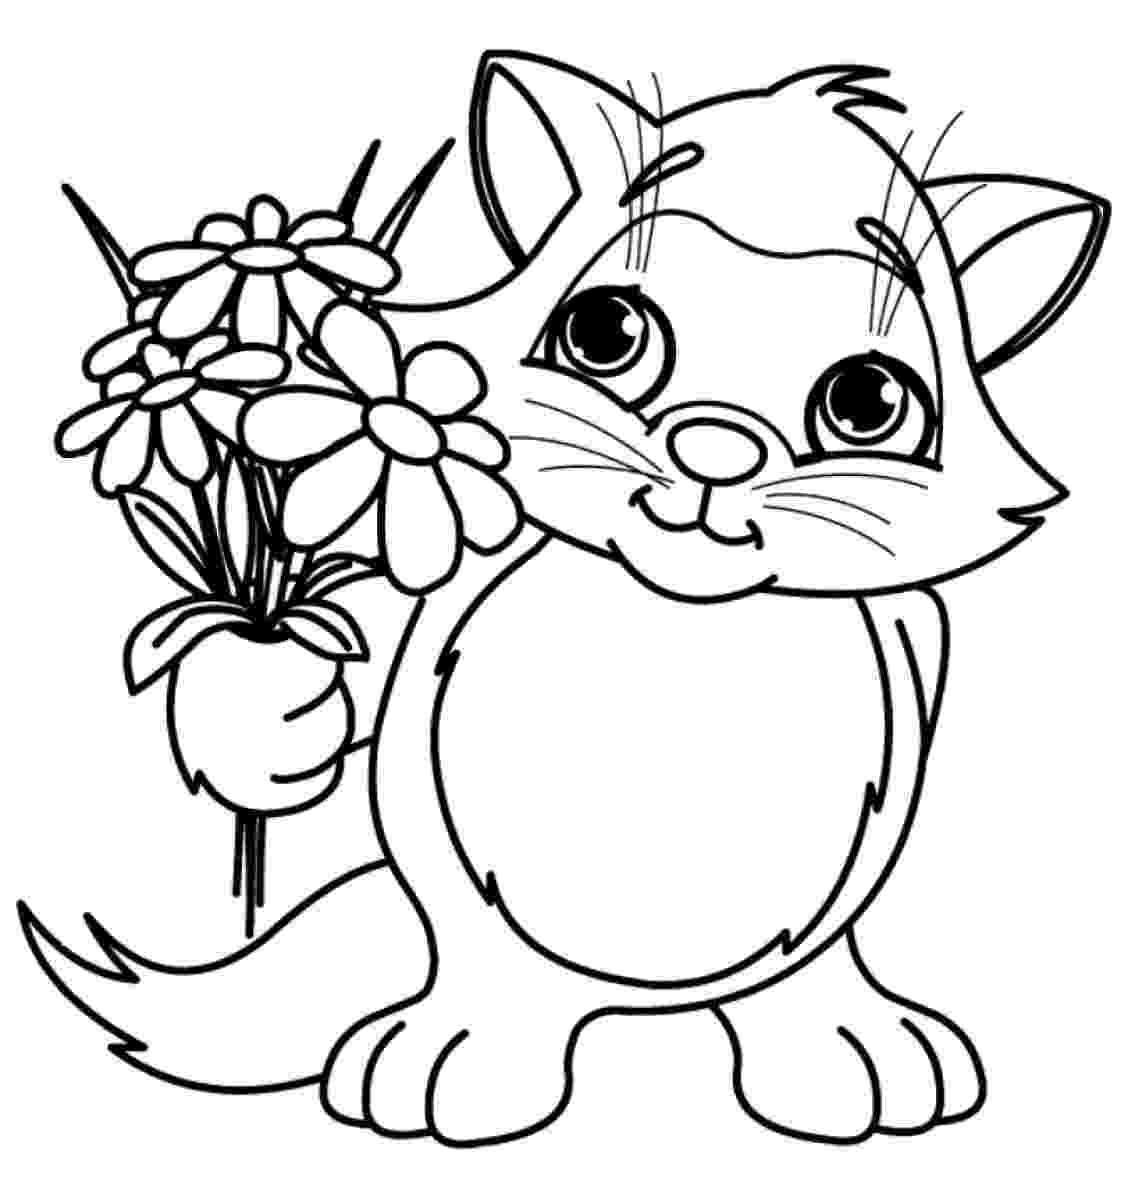 coloring page of flower spring flower coloring pages to download and print for free coloring page of flower